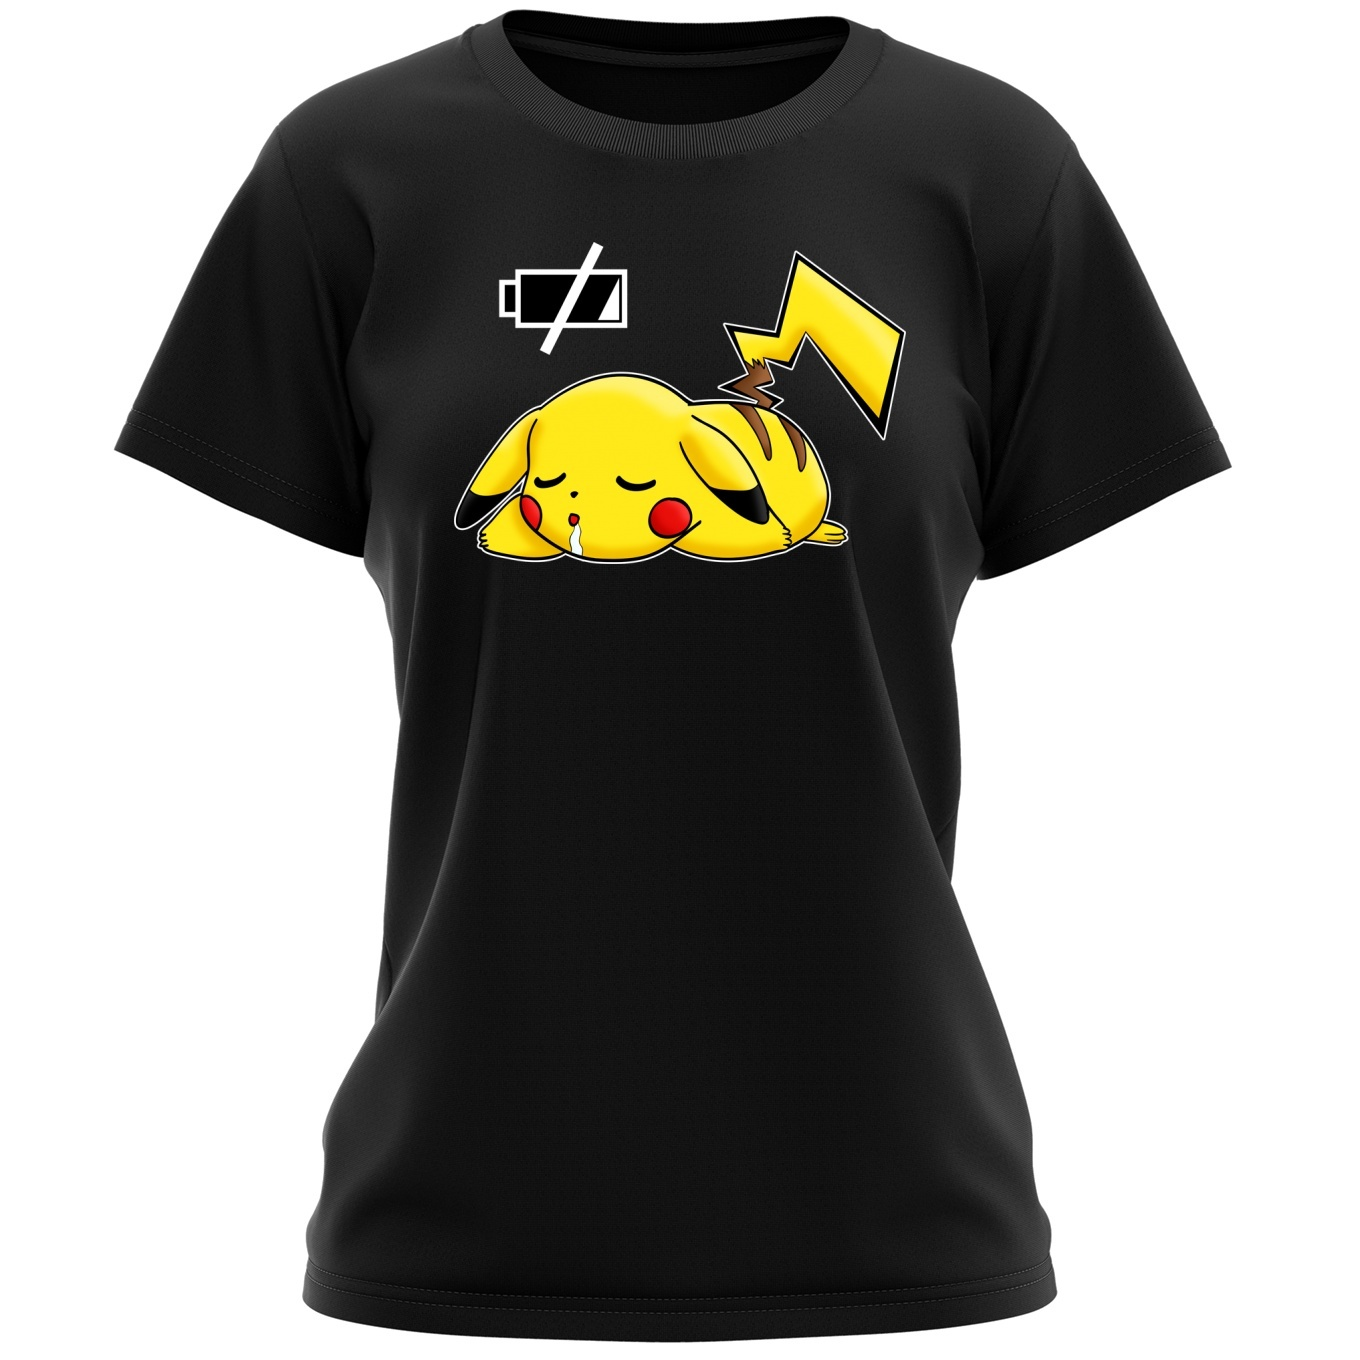 3c00e6ac Funny Pokémon Parodies Women T-shirt - Pikachu - Battery Off ...